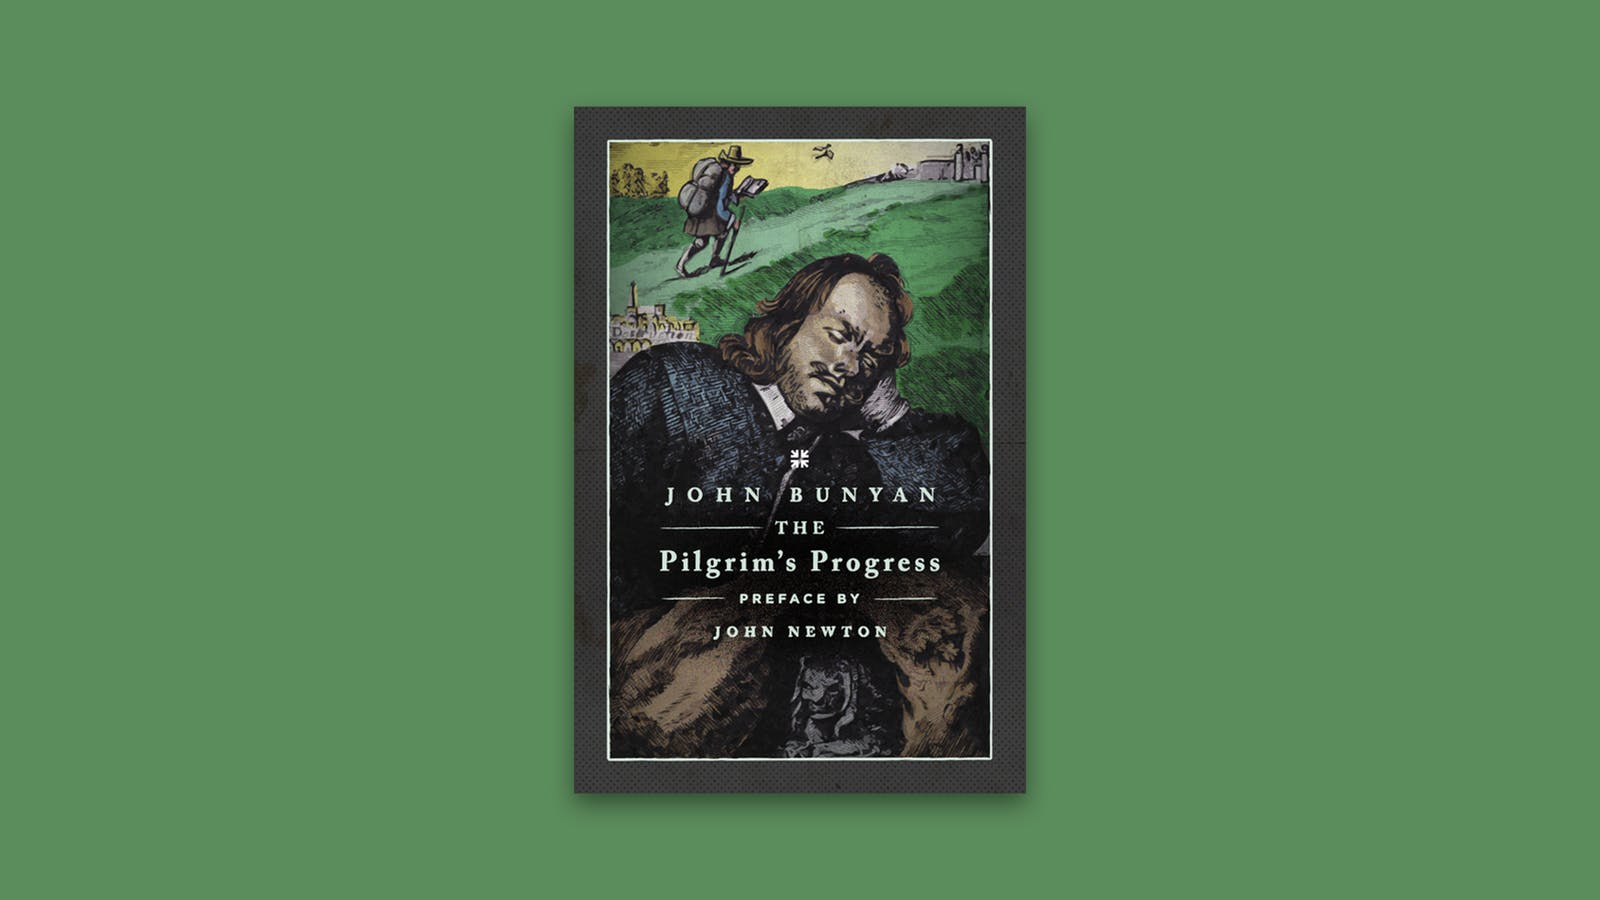 an analysis of the puritan story in the pilgrims progress The pilgrim's progress analysis the pronoun i occurs so rarely in this story that it close bunyan was an important figure in the 17th-century puritan.